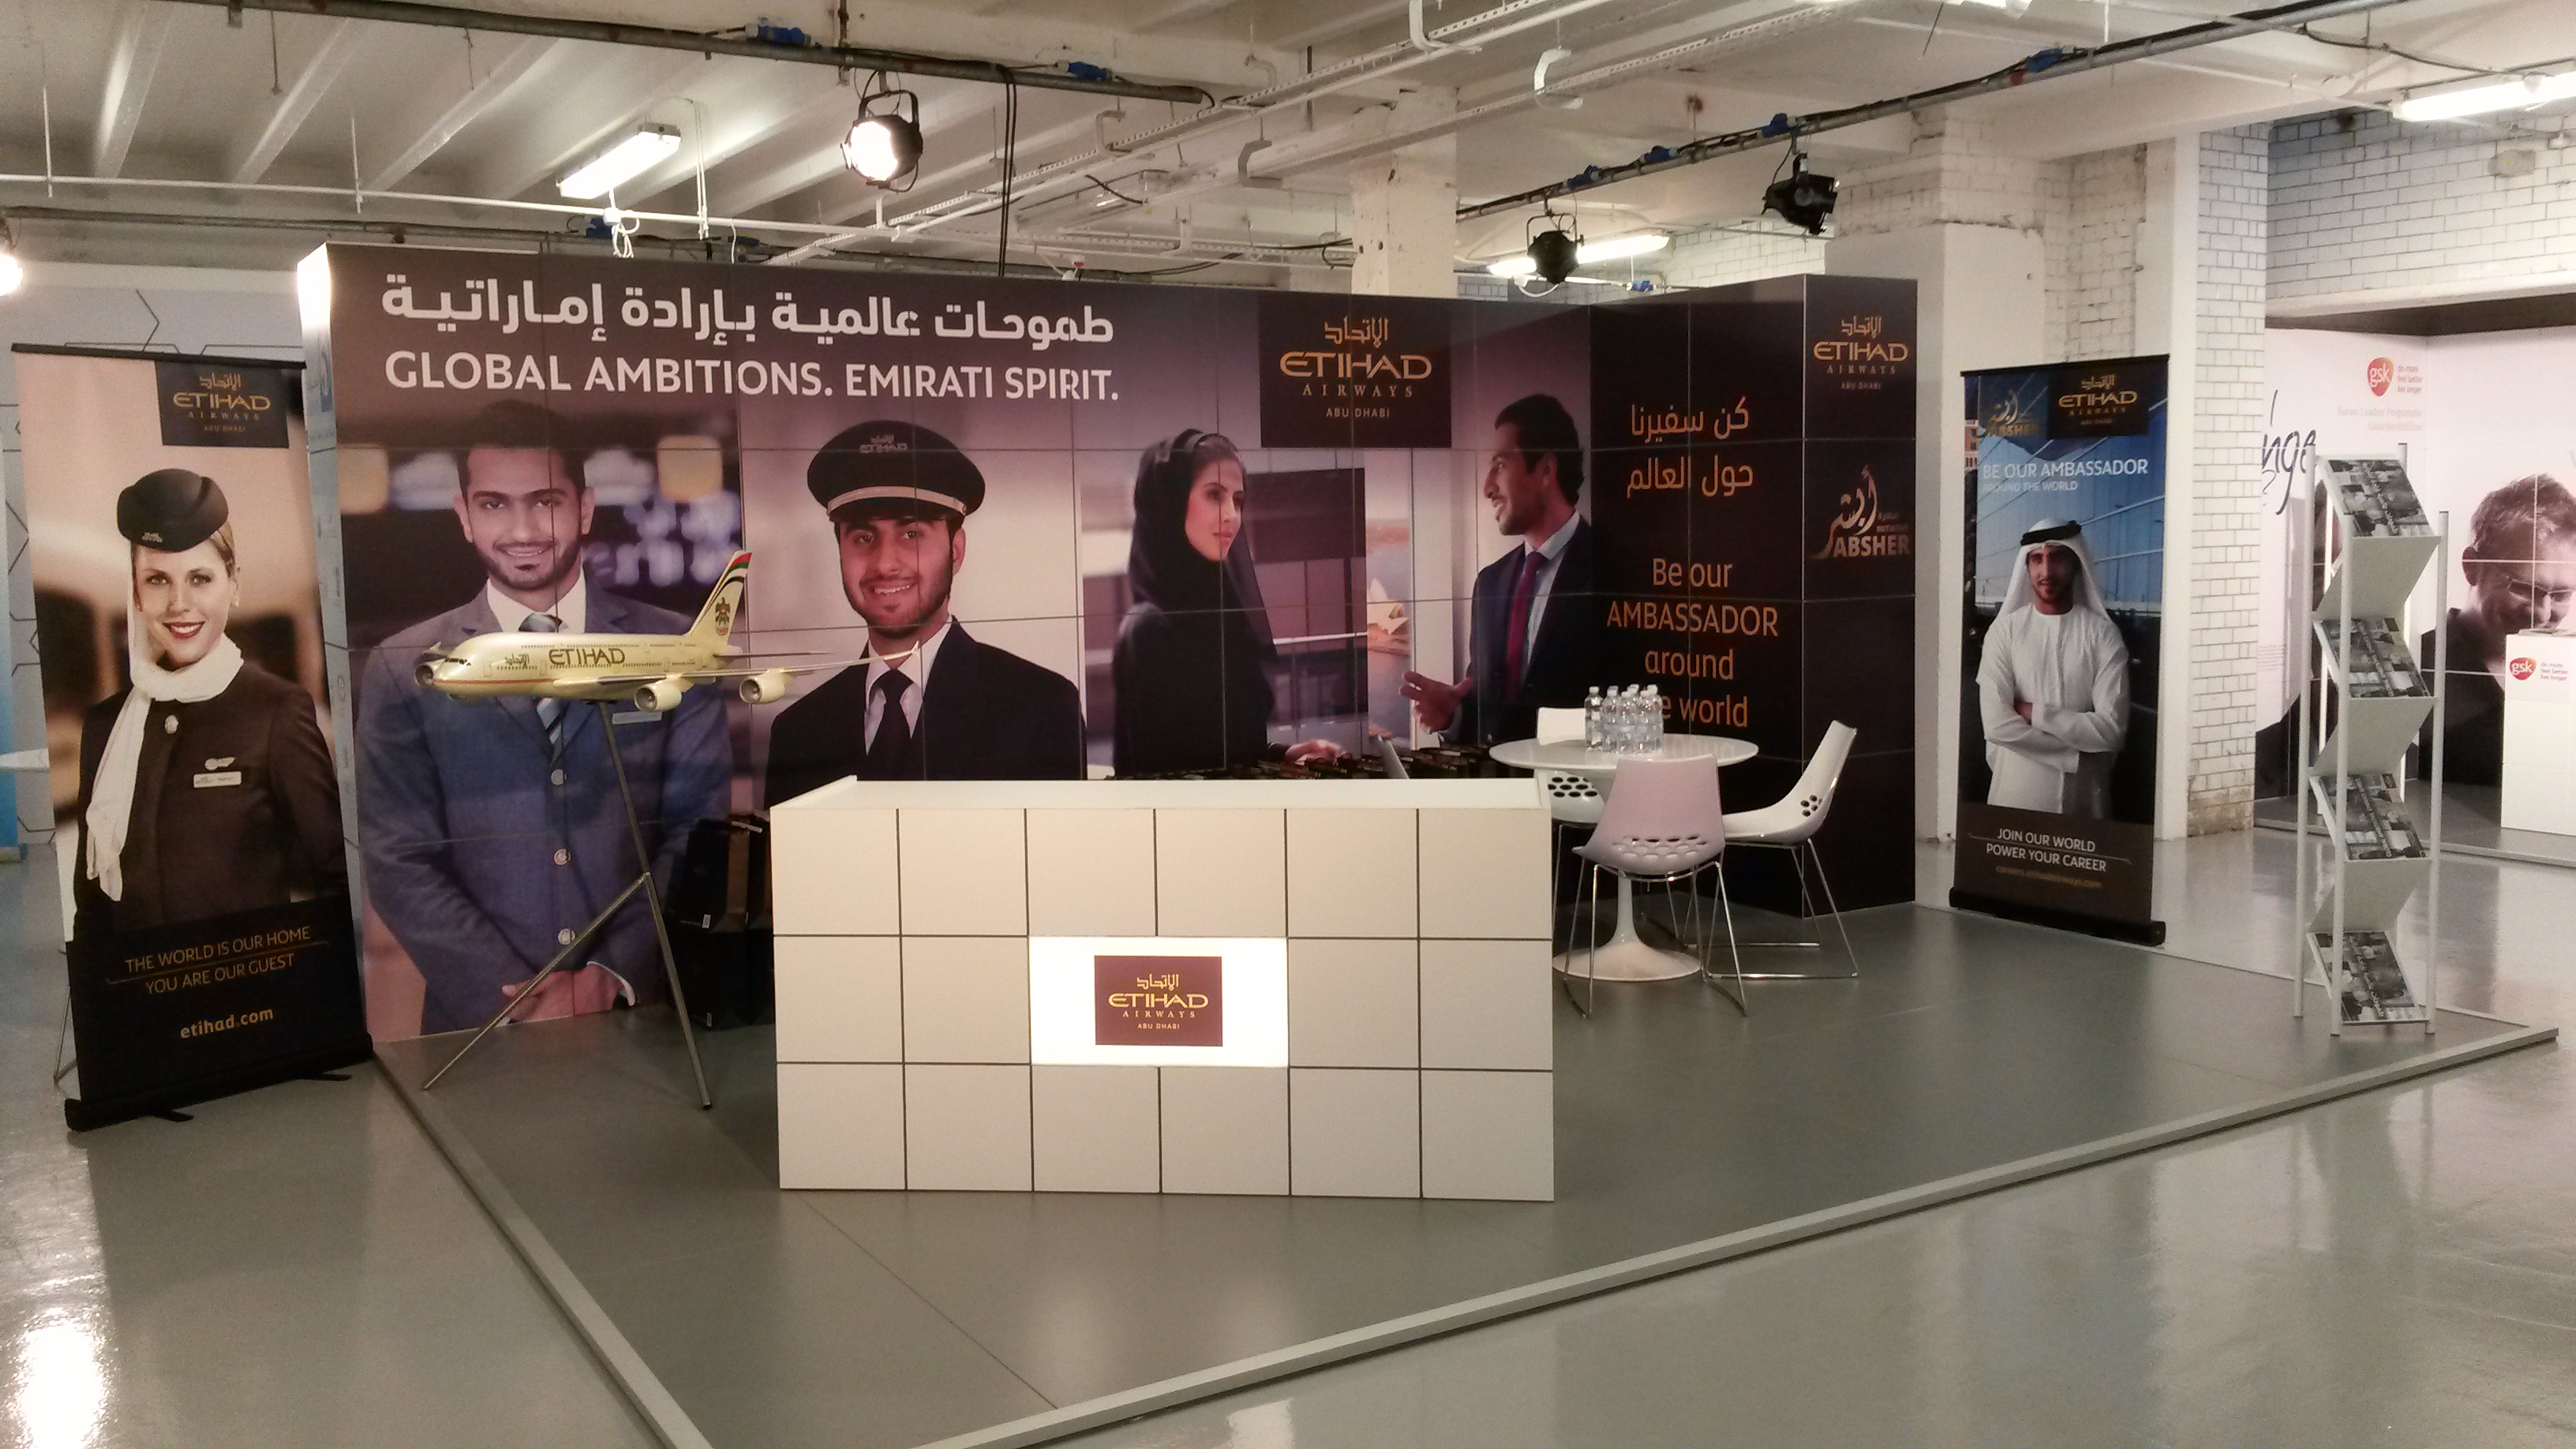 Exhibition Stand Sales Jobs : Exhibition stands uae uk pioneers forum r s sets ltd